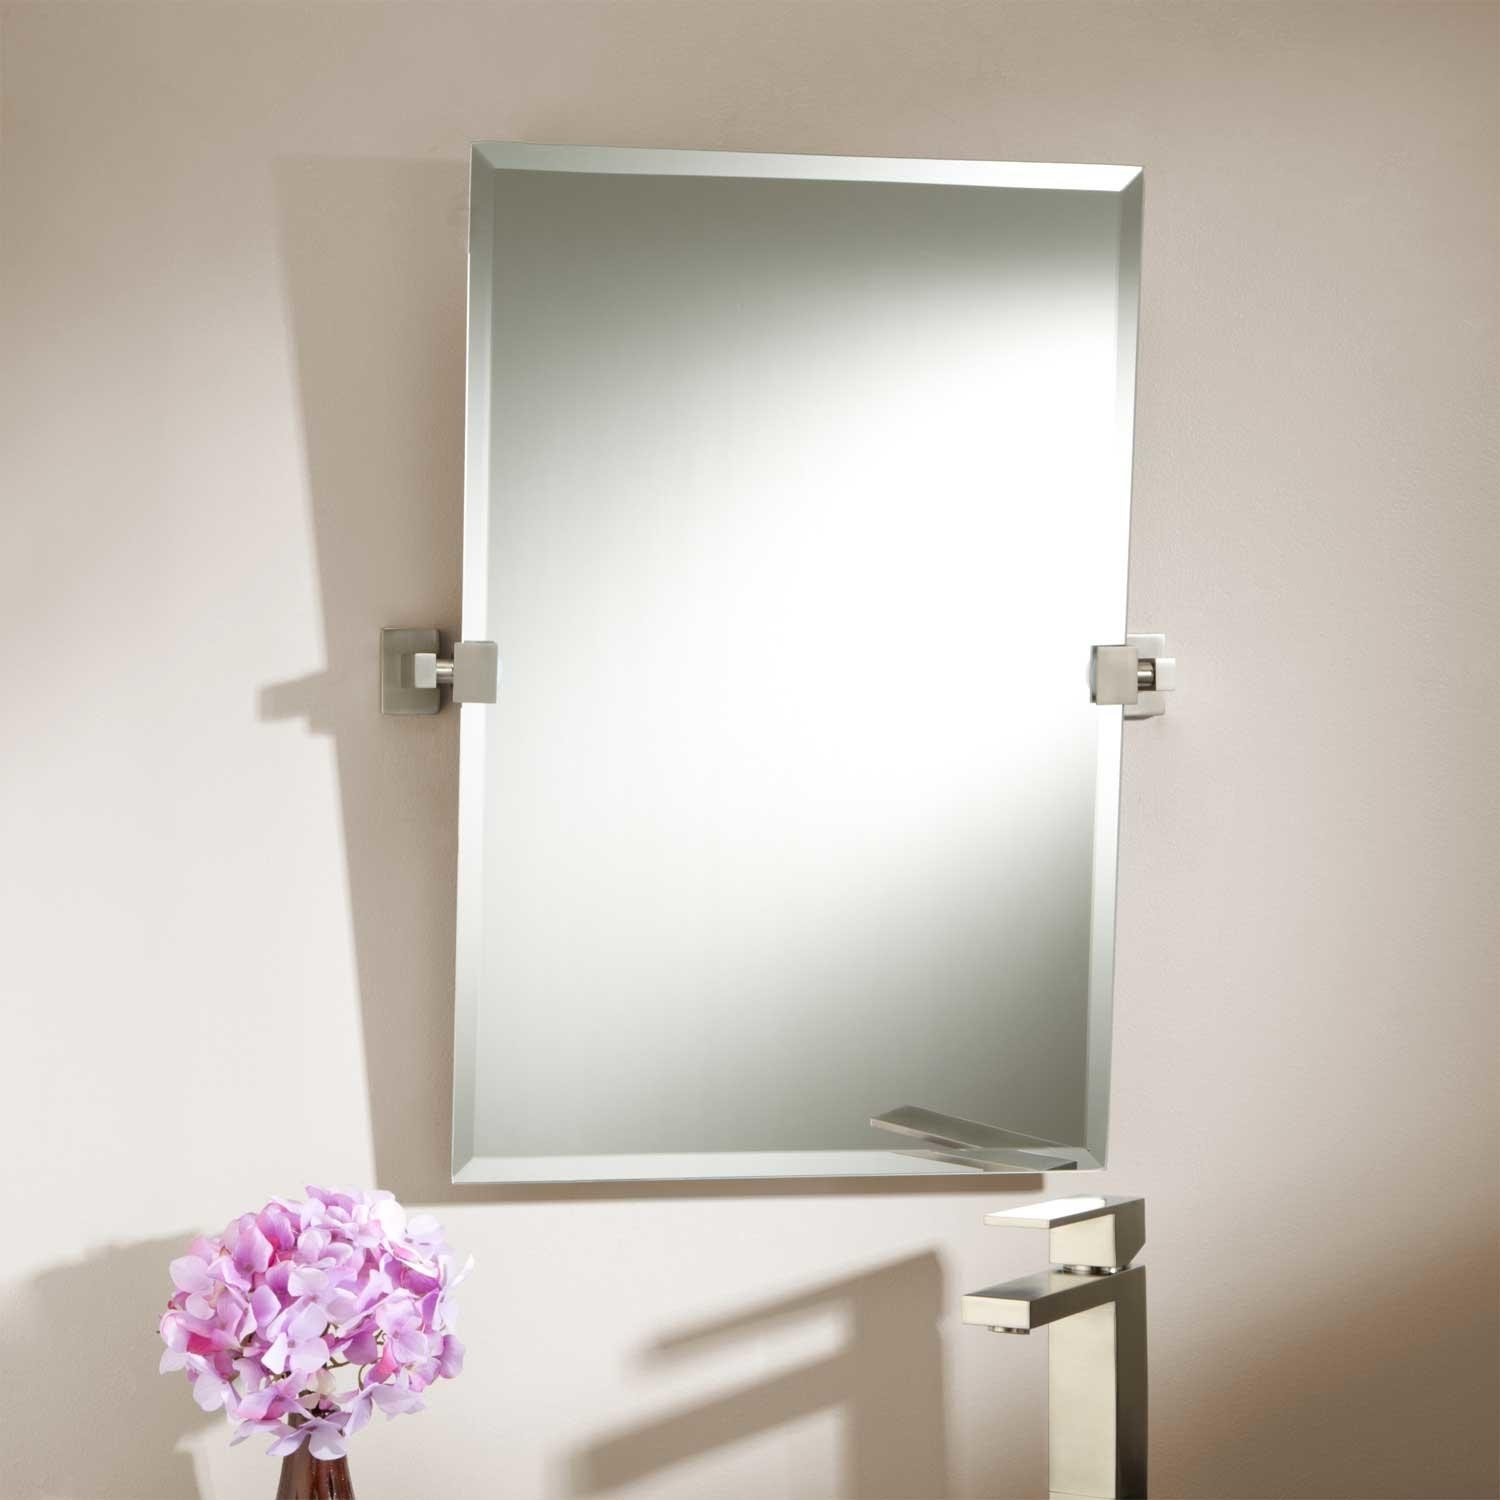 Permalink to Brushed Nickel Bathroom Vanity Mirrors